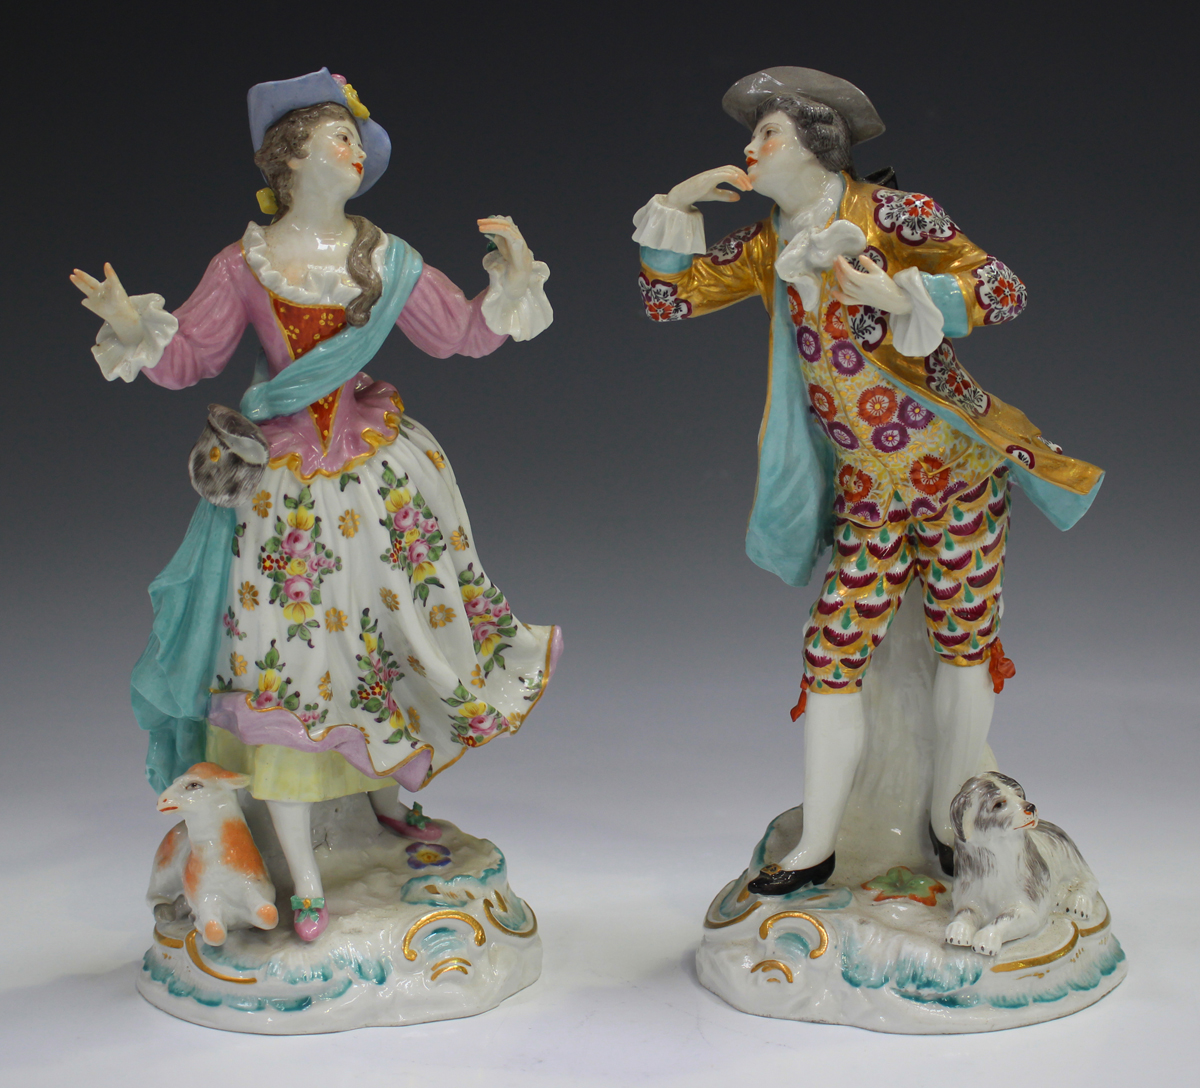 A pair of Continental porcelain figures, late 19th century, modelled in Chelsea style as a gallant